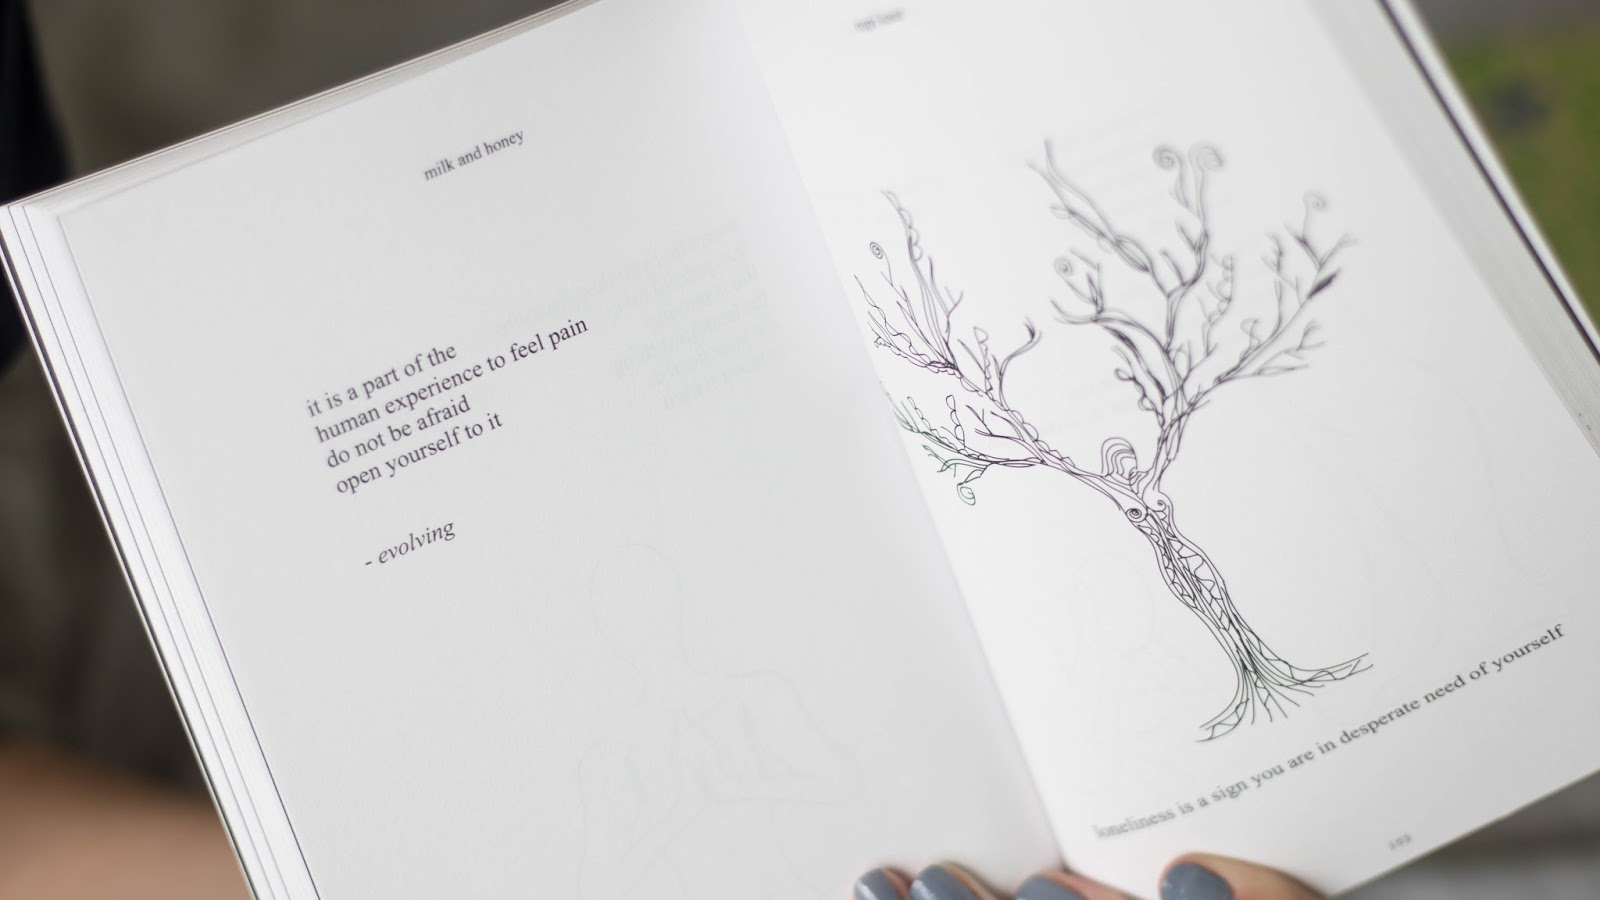 Three poetry books chloeharriets the book also contains beautiful line illustrations which sit nicely alongside the words this book is really quite lovely solutioingenieria Image collections